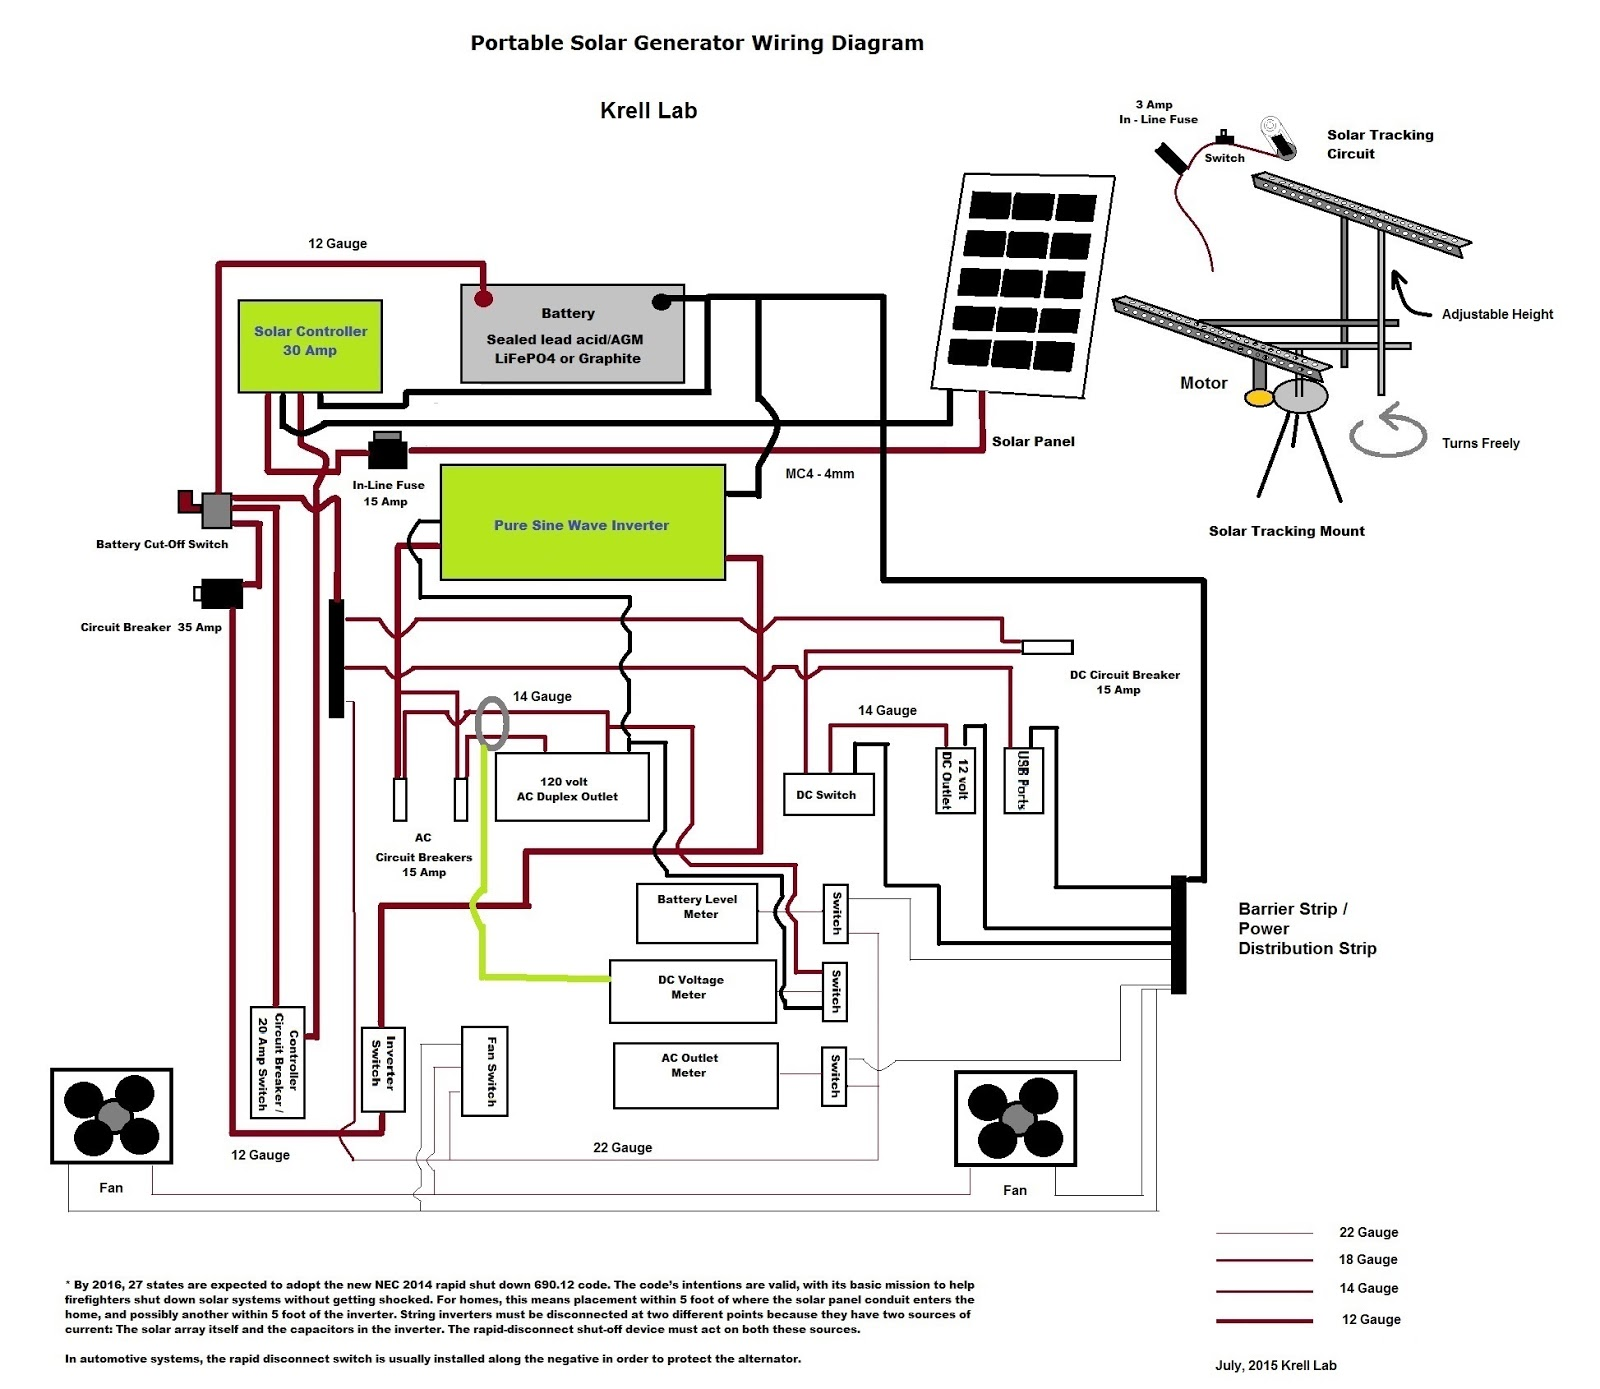 Generator Wiring Schematic Diagram : The krell lab